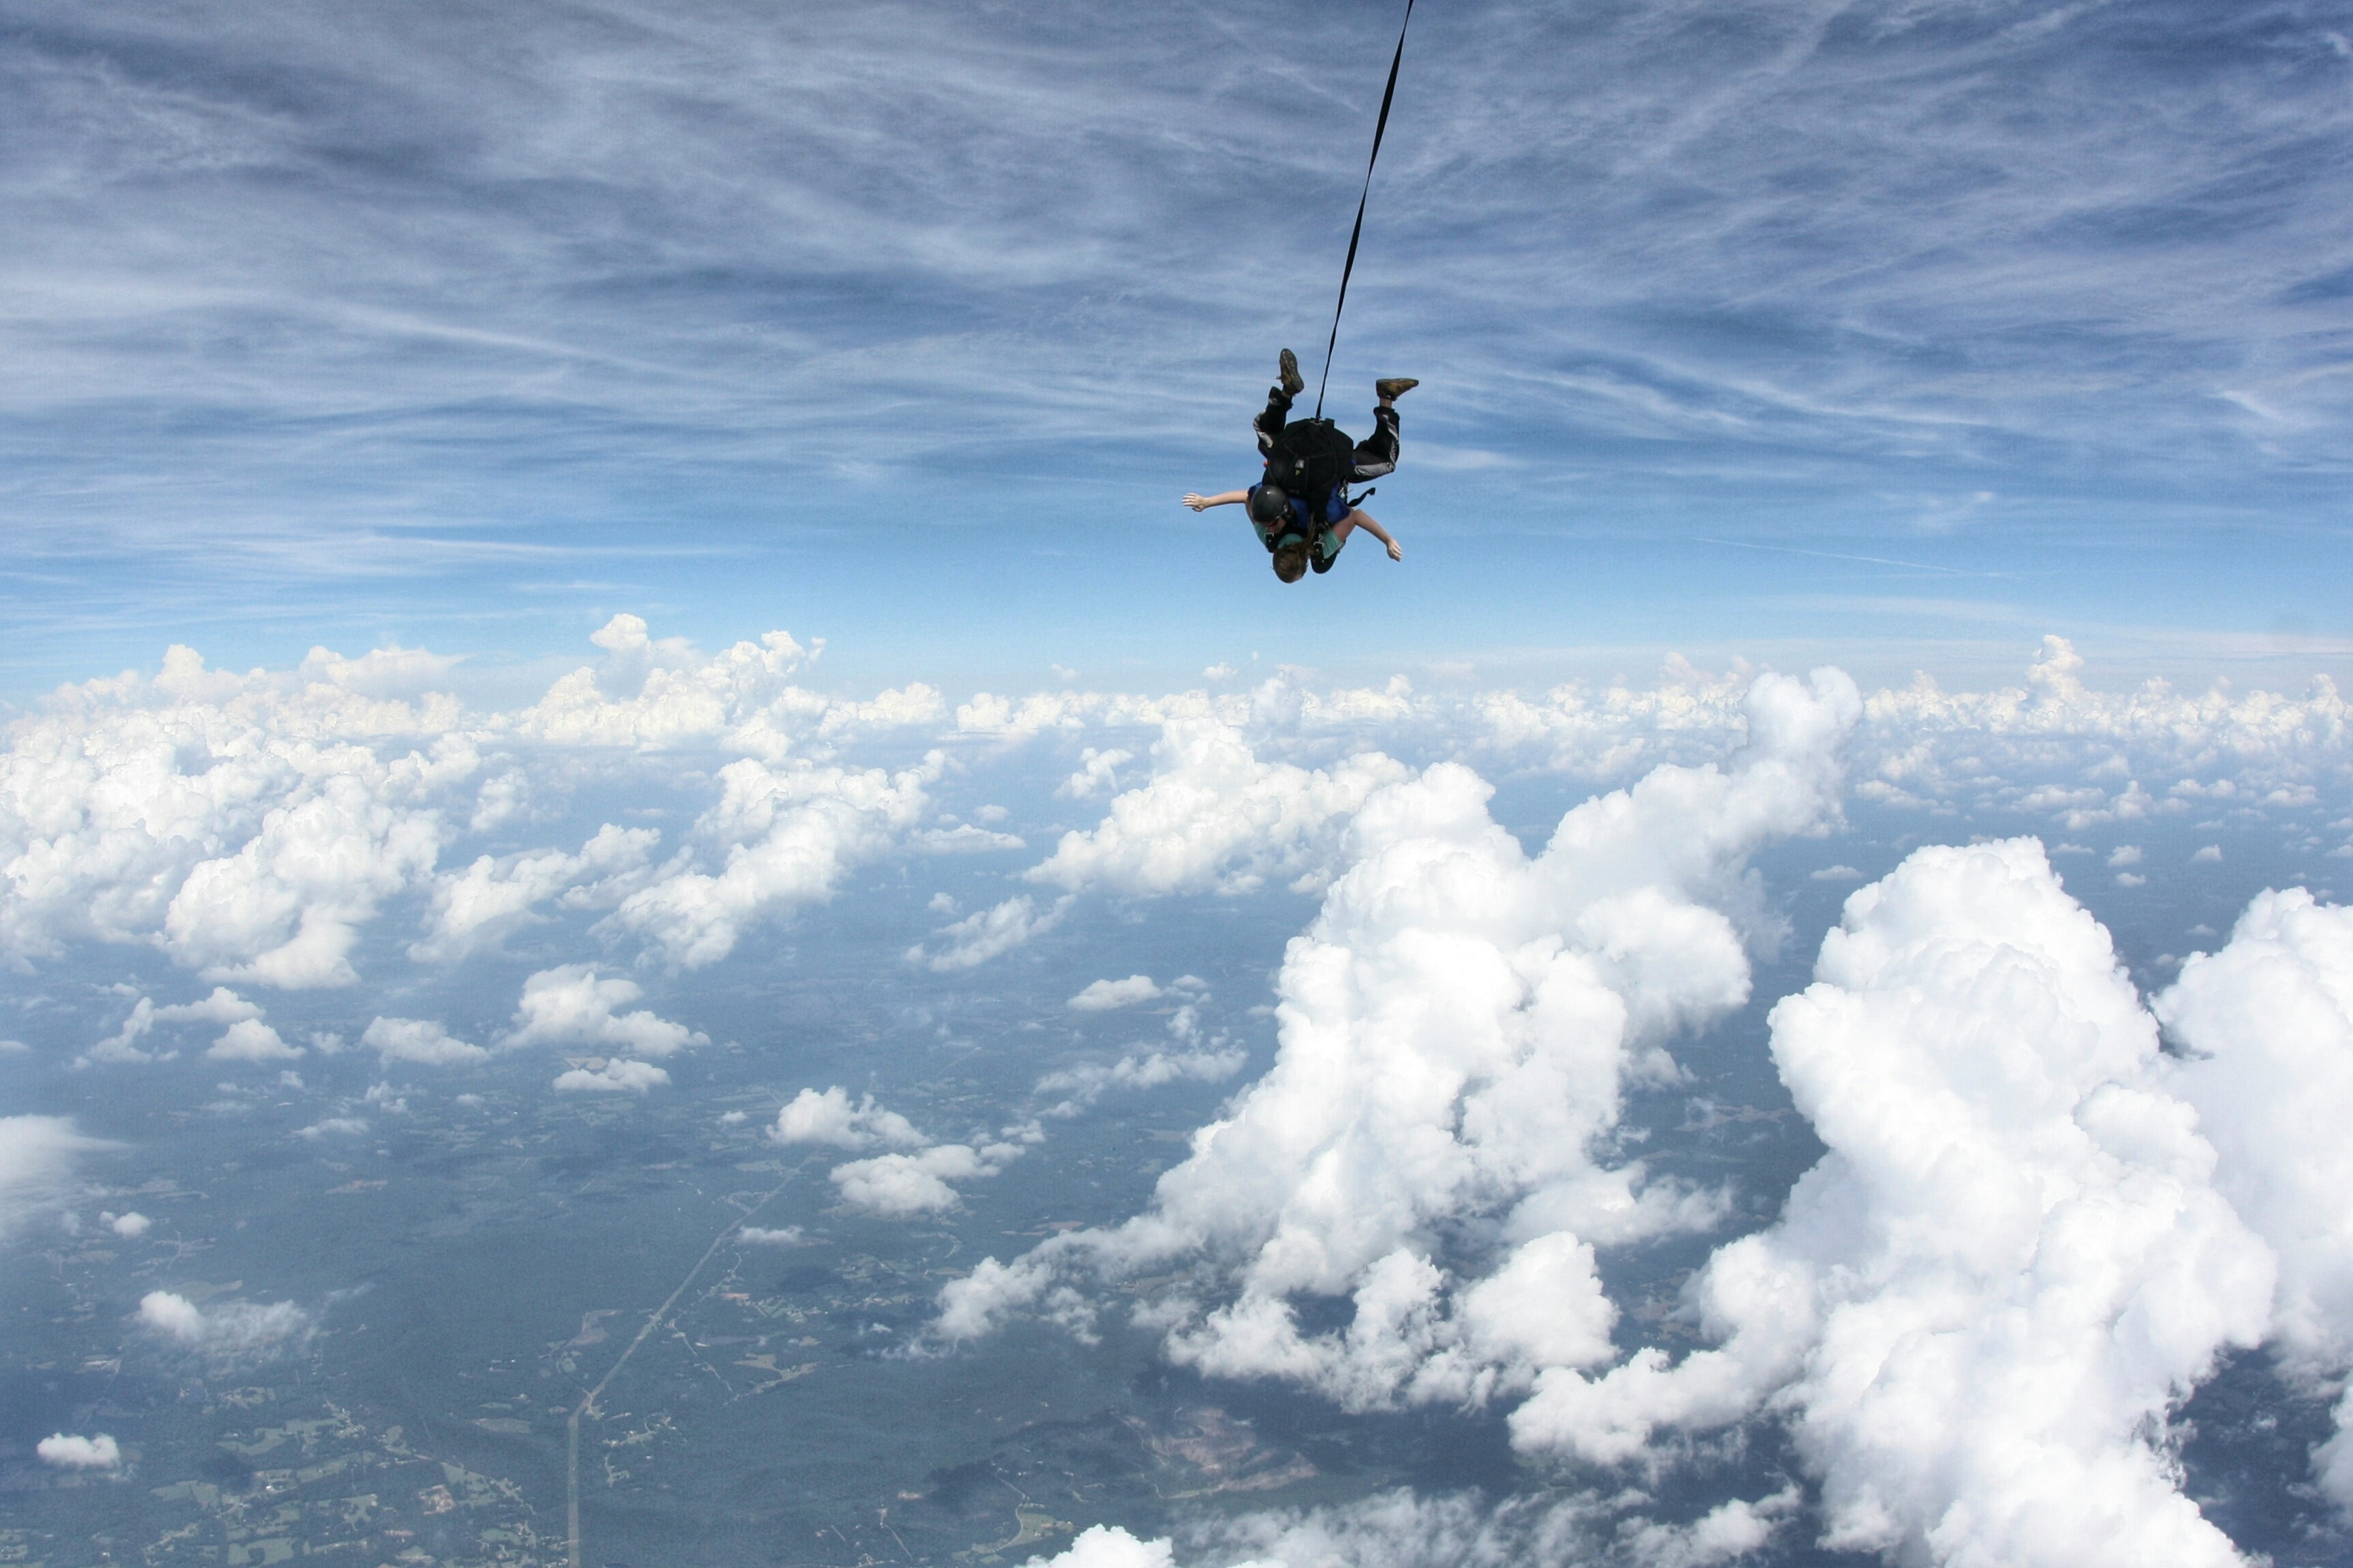 Skydive Atlanta